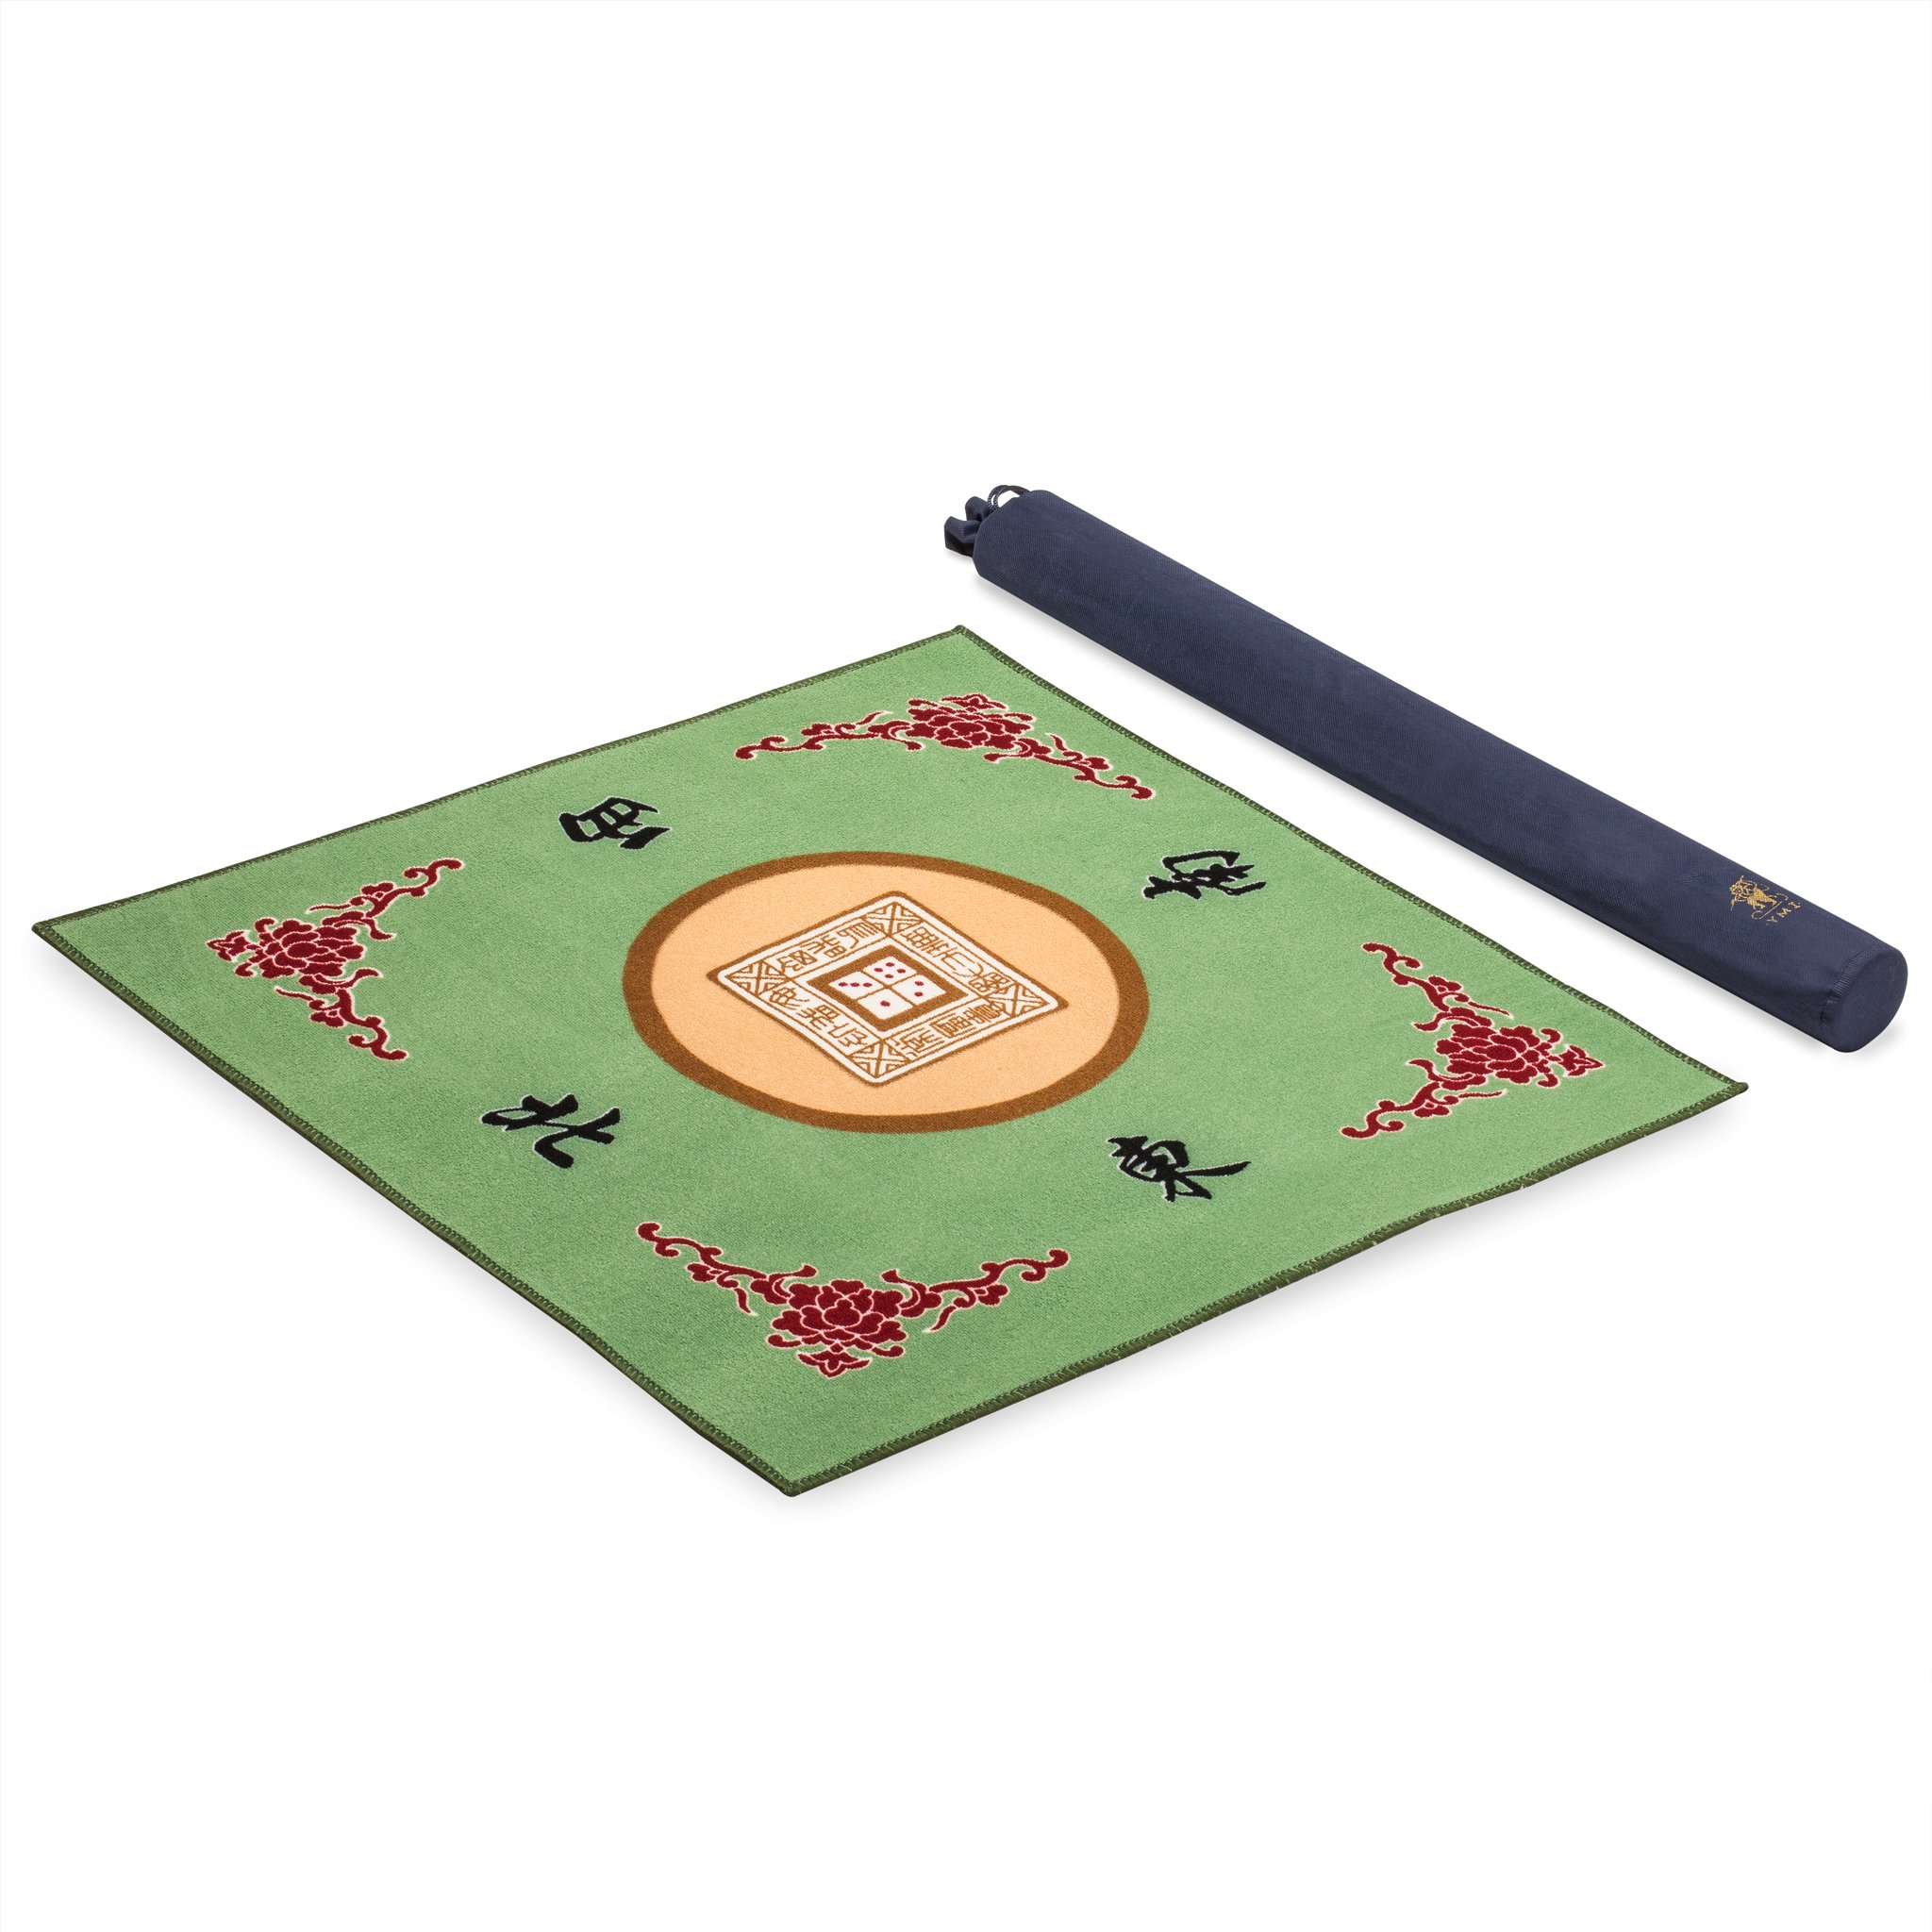 Yellow Mountain Imports Table Cover for Poker, Card Games, Board Games, Tile Games, Dominoes, and Mahjong (Mah Jong, Mahjongg, Mah-Jongg, Mah Jongg, Majiang), 30.8 x 30.8 Inches, Green